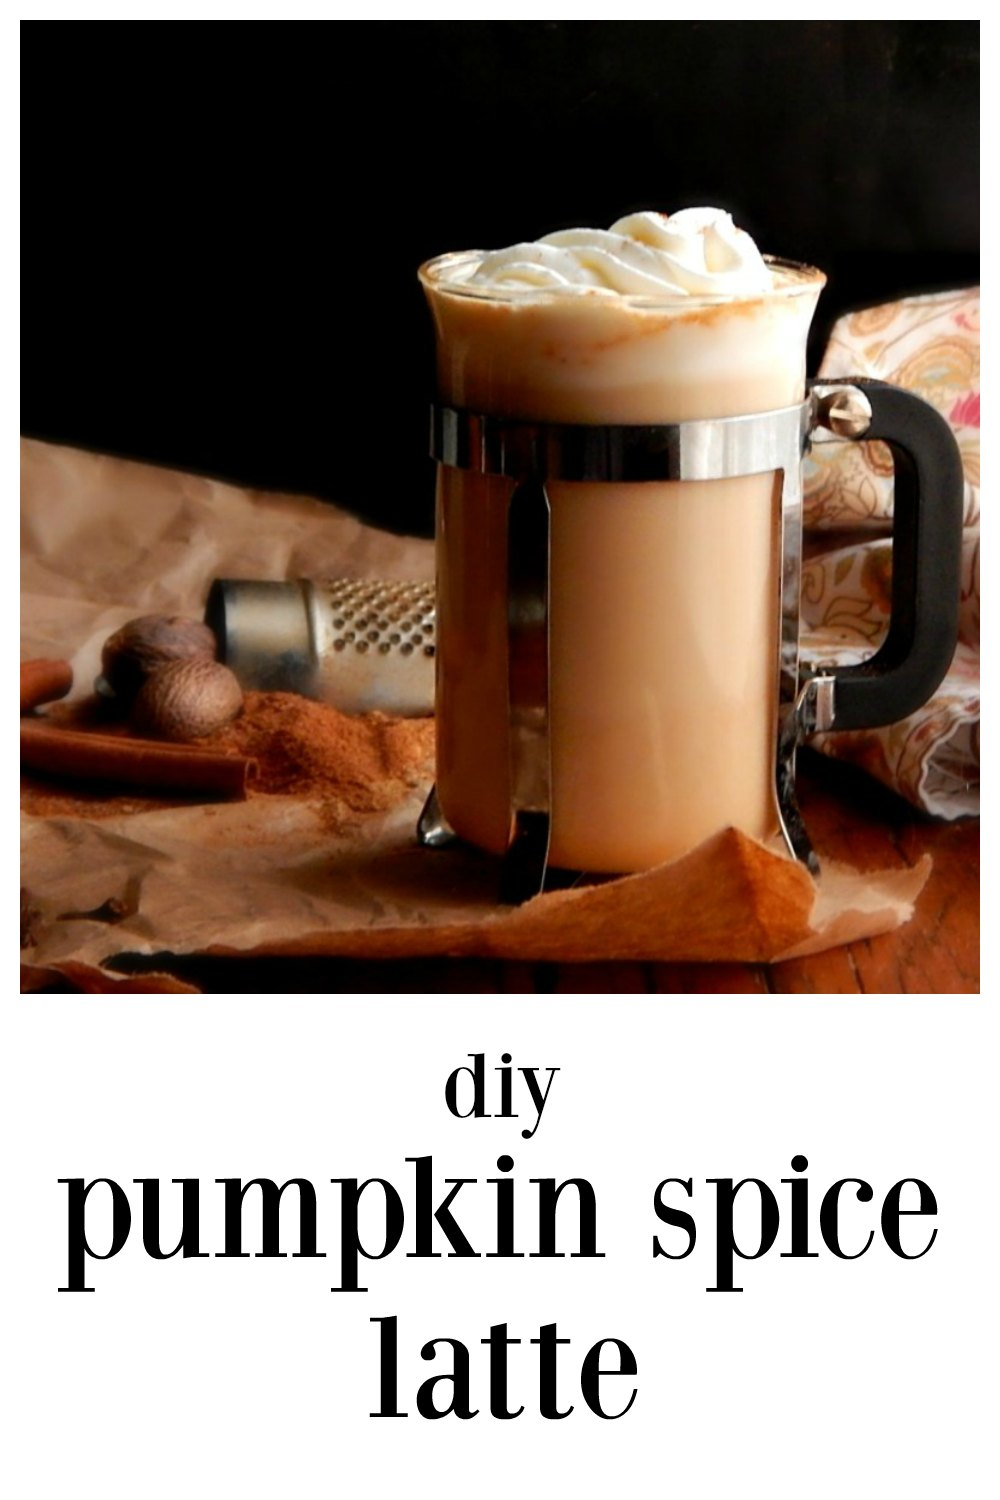 Homemade DIY Pumpkin Spice Lattes - easy, fast, delish, customizable and they'll save a boatload of money (and calories!) #PumpkinSpiceLatte #HomemadePumpkinSpiceLatte #DiyPumpkinSpiceLatte